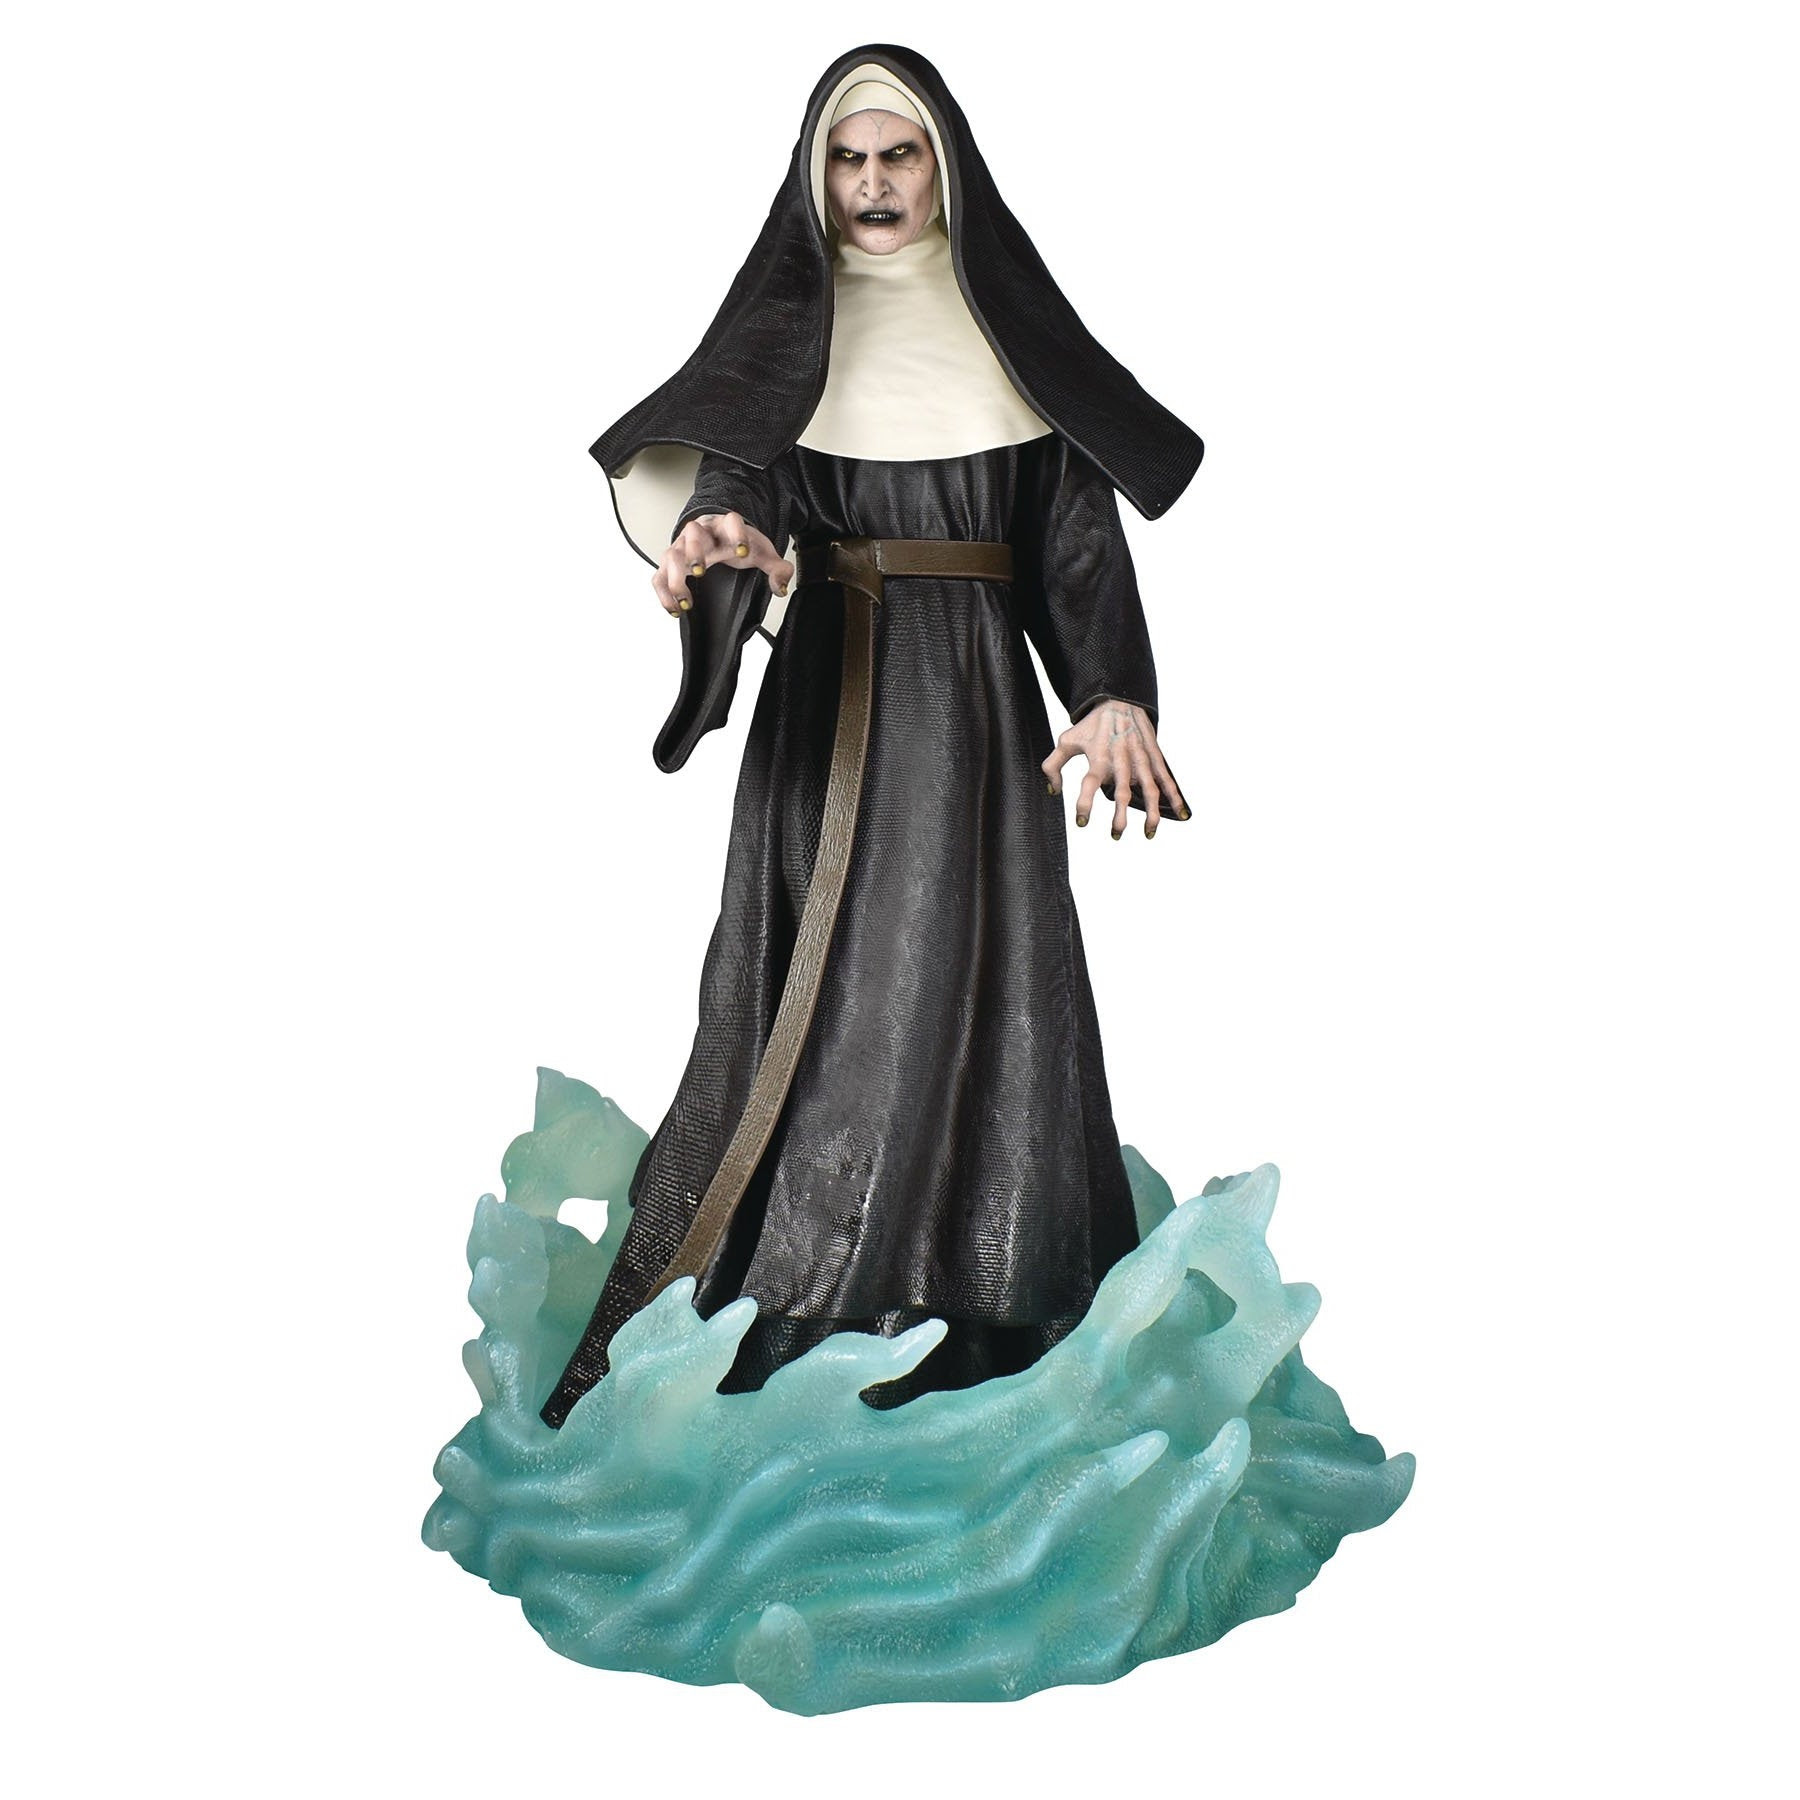 Image of The Conjuring Nun PVC Statue - JULY 2020